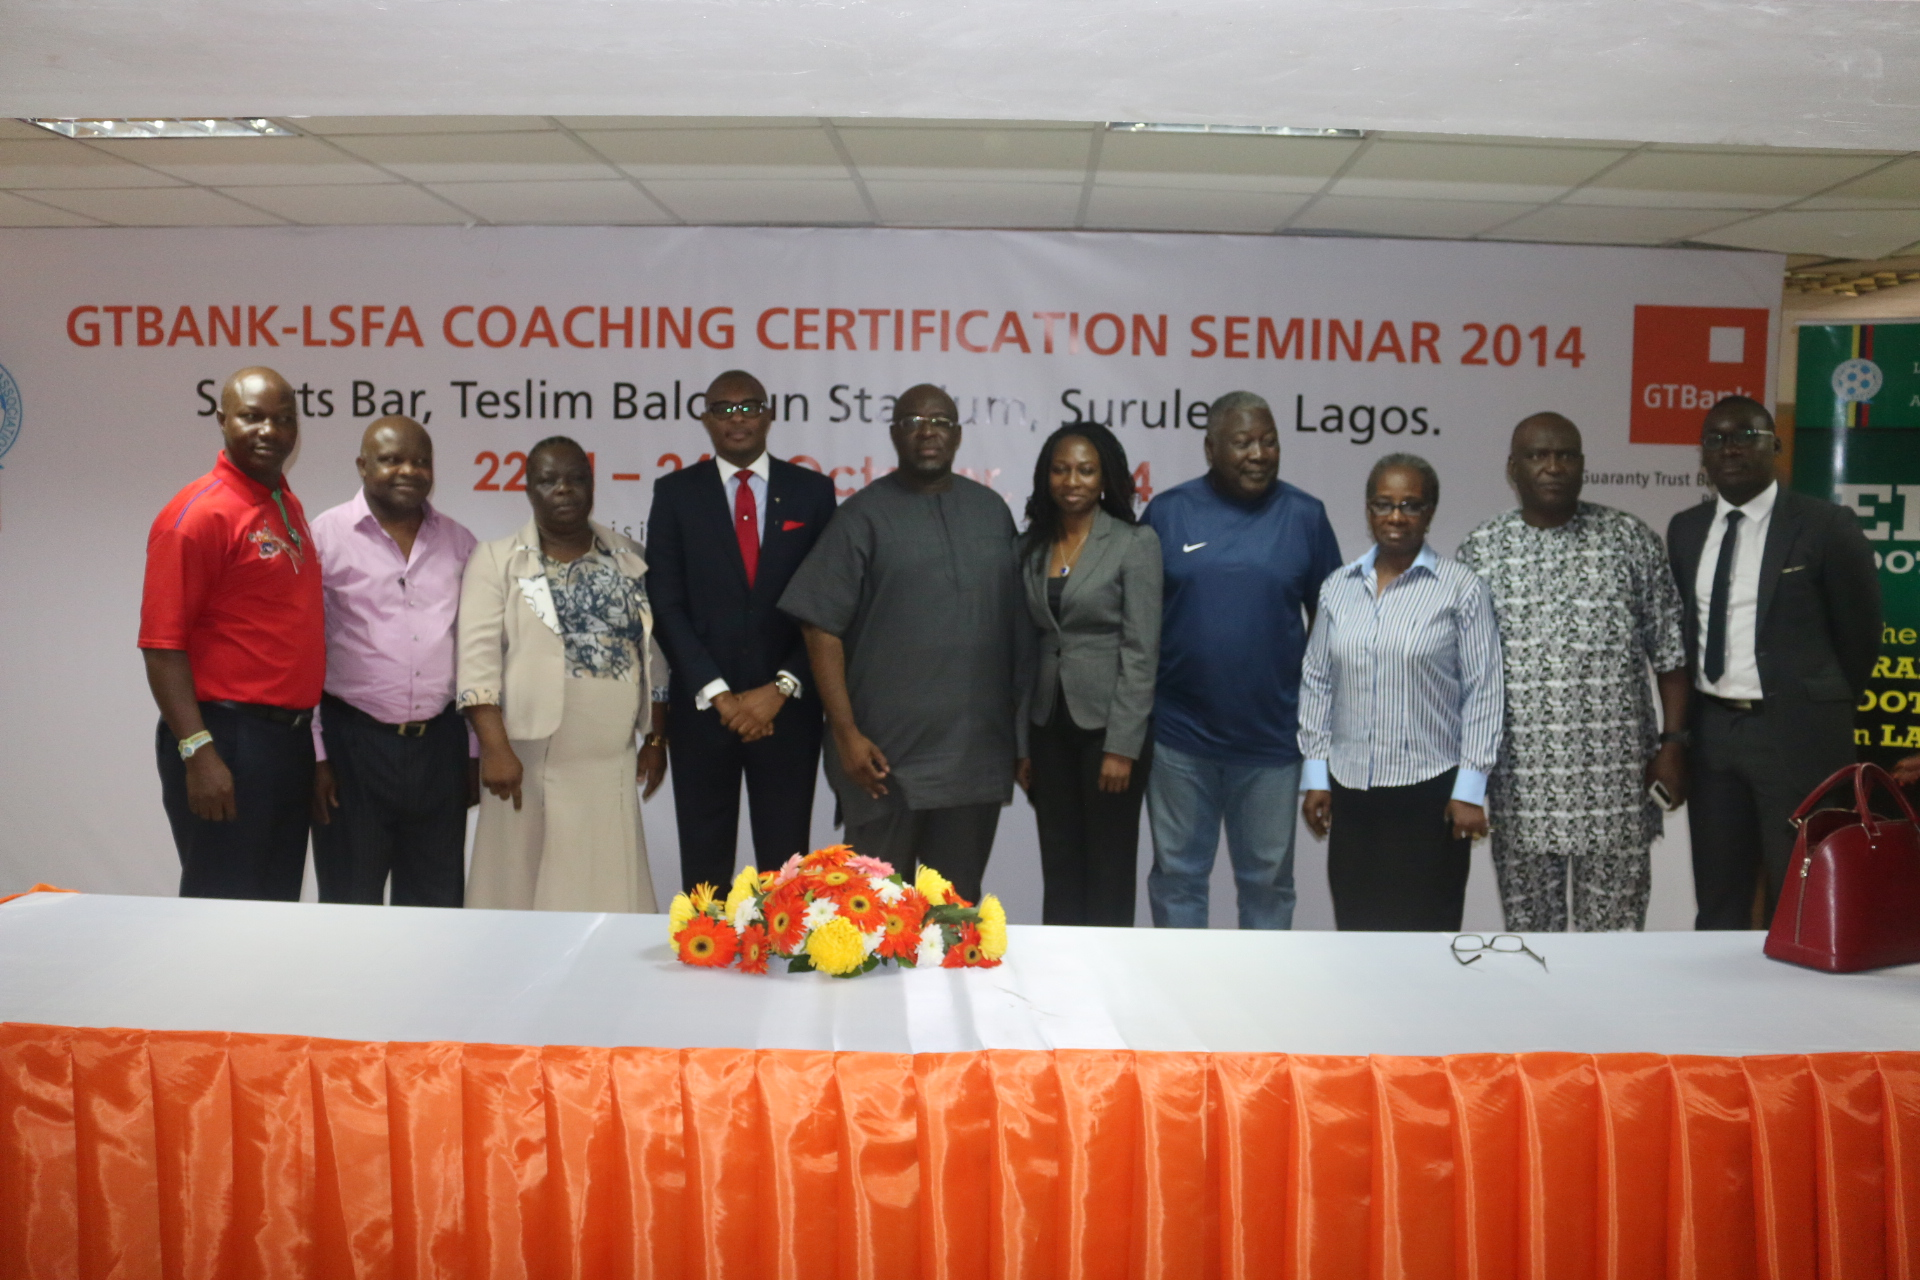 GTBank/LSFA Coaching Certification Seminar